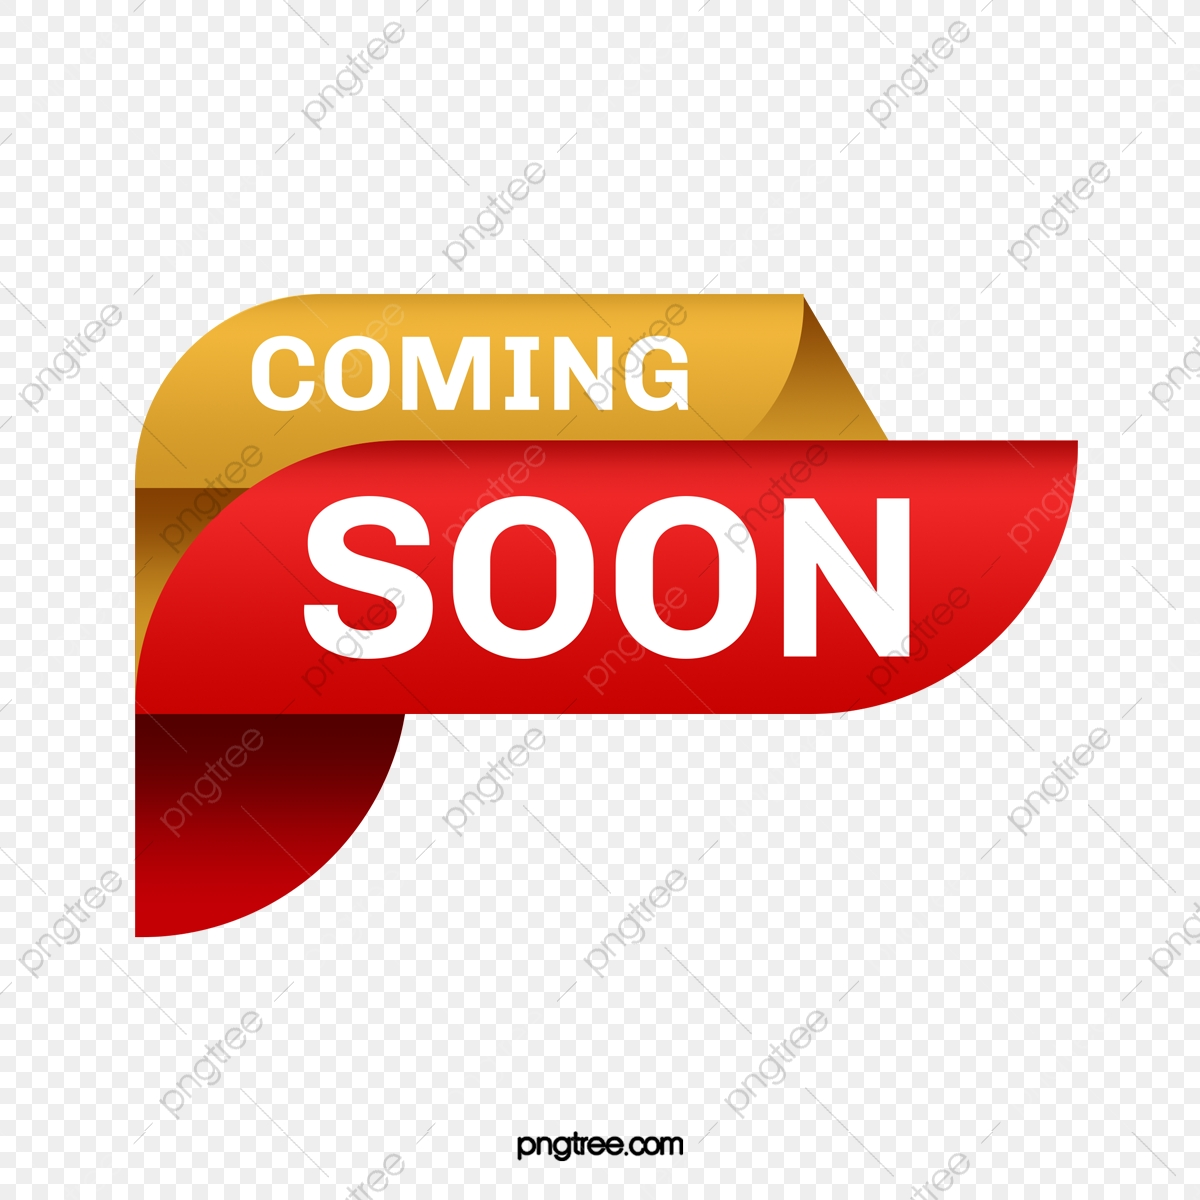 Red Banner Coming Soon Red Flag Subscript Png Transparent Clipart Image And Psd File For Free Download